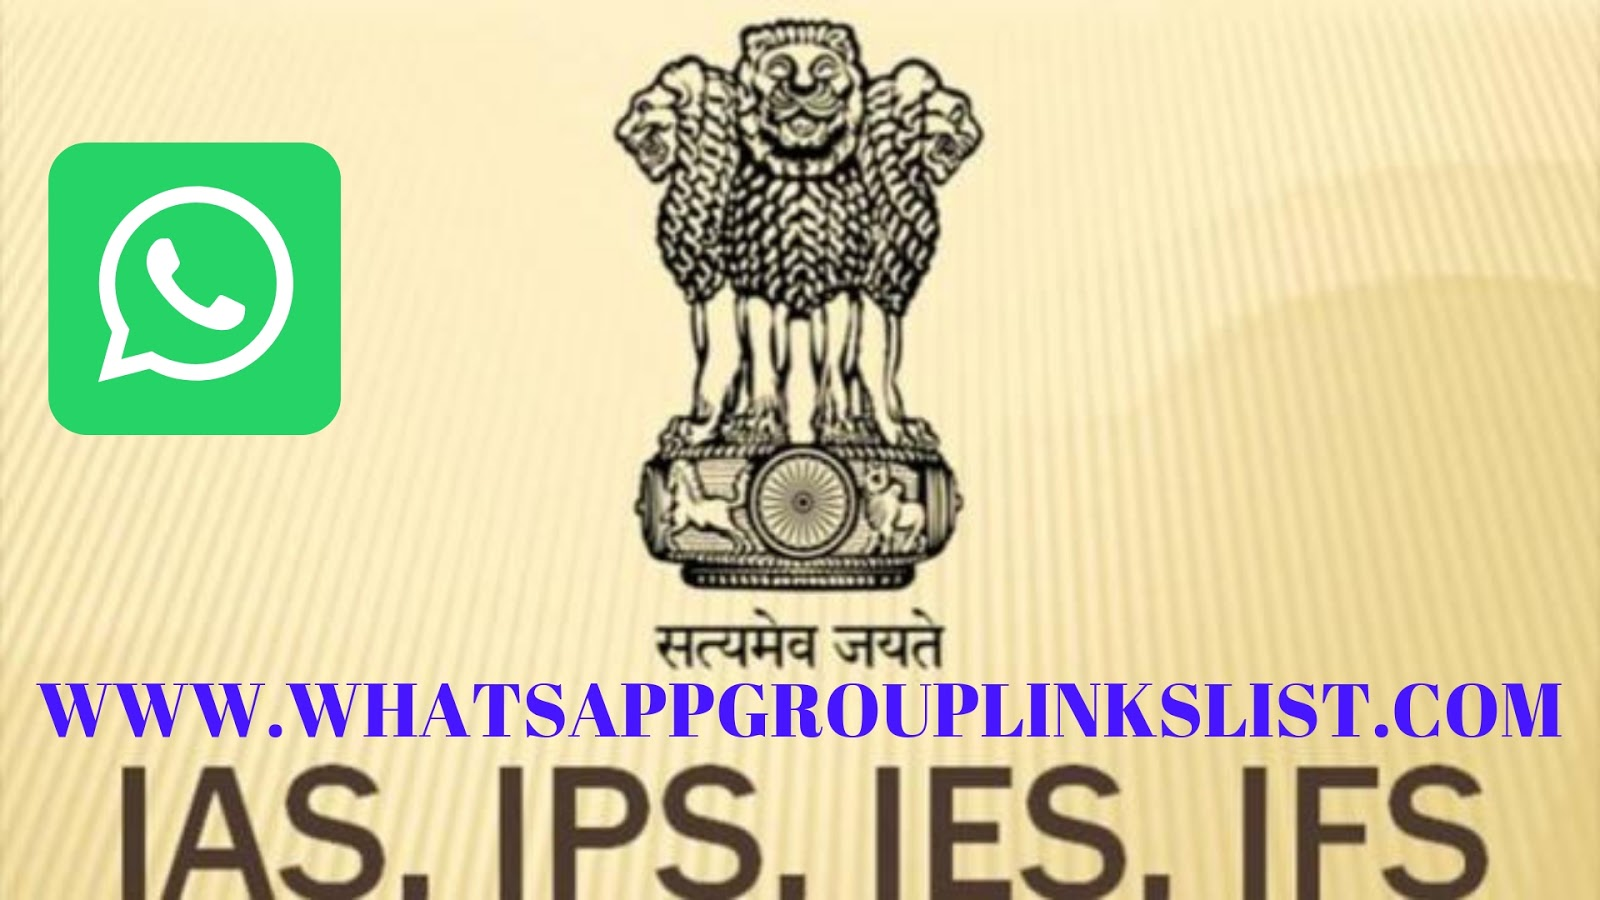 JOIN IAS & IPS WHATSAPP GROUP LINKS LISTS